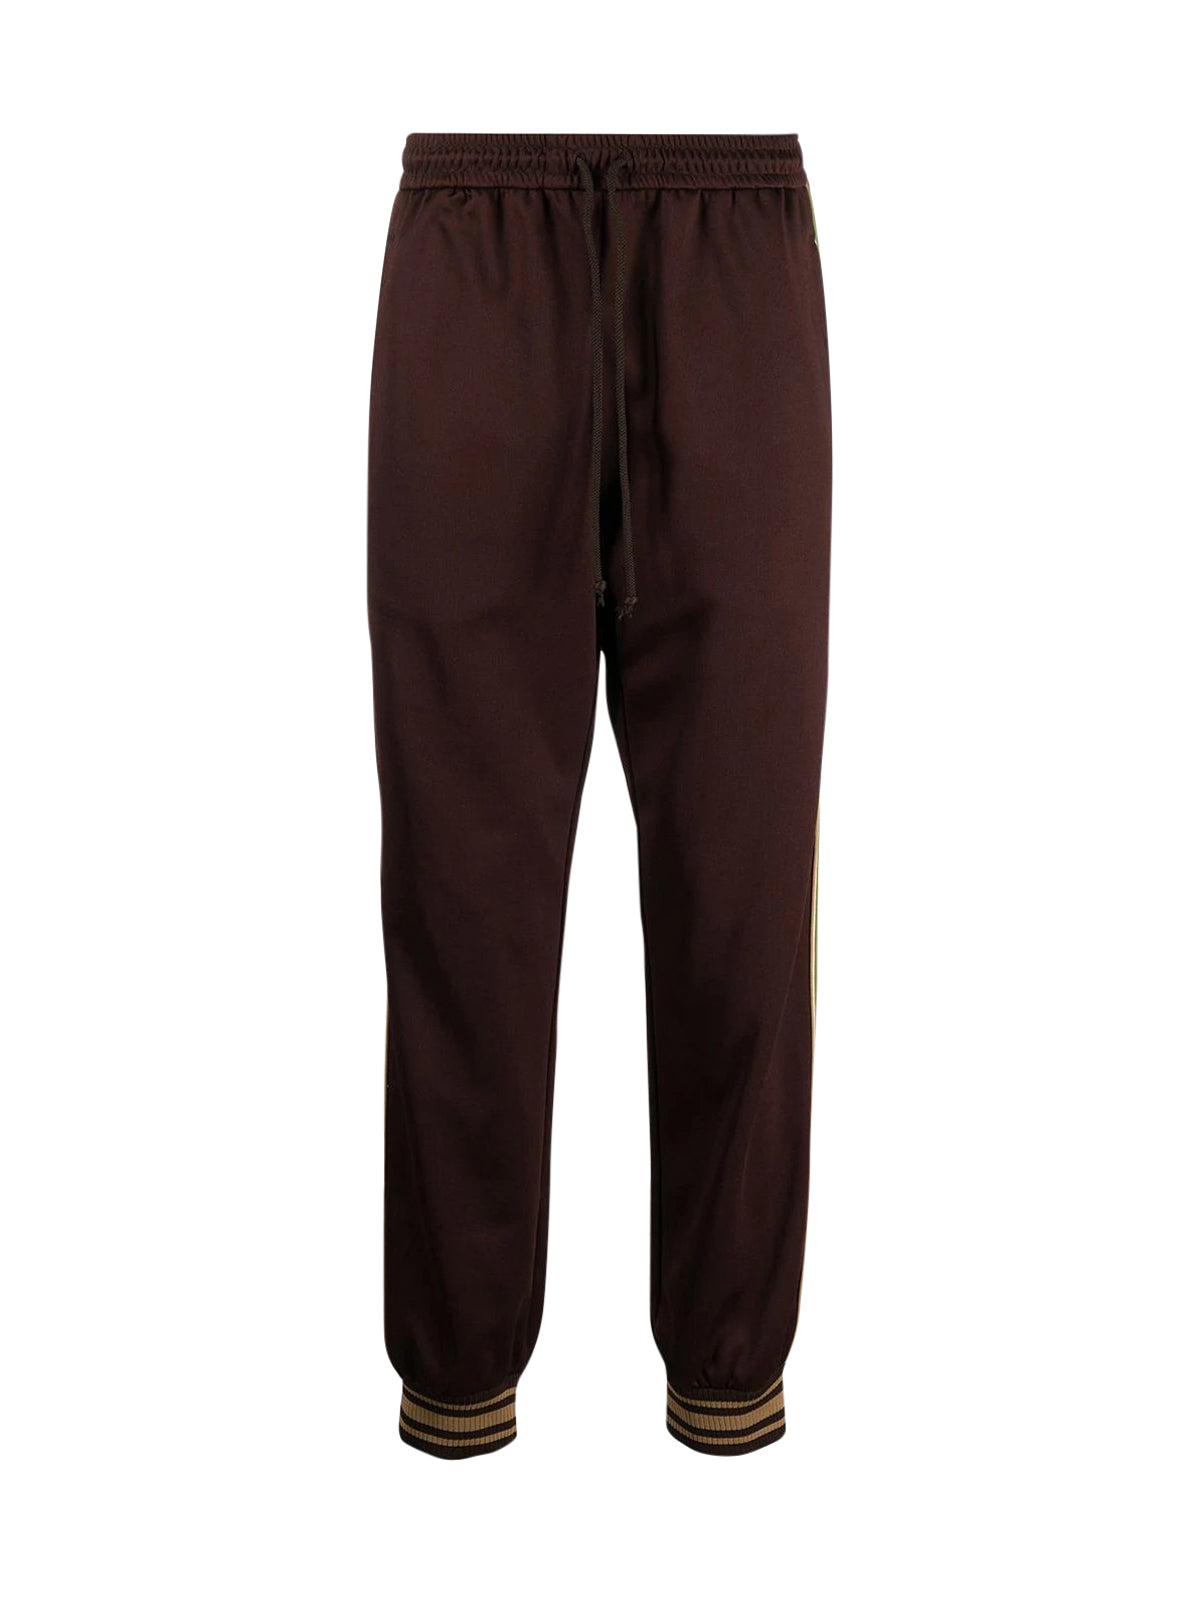 Web-stripe sweatpants